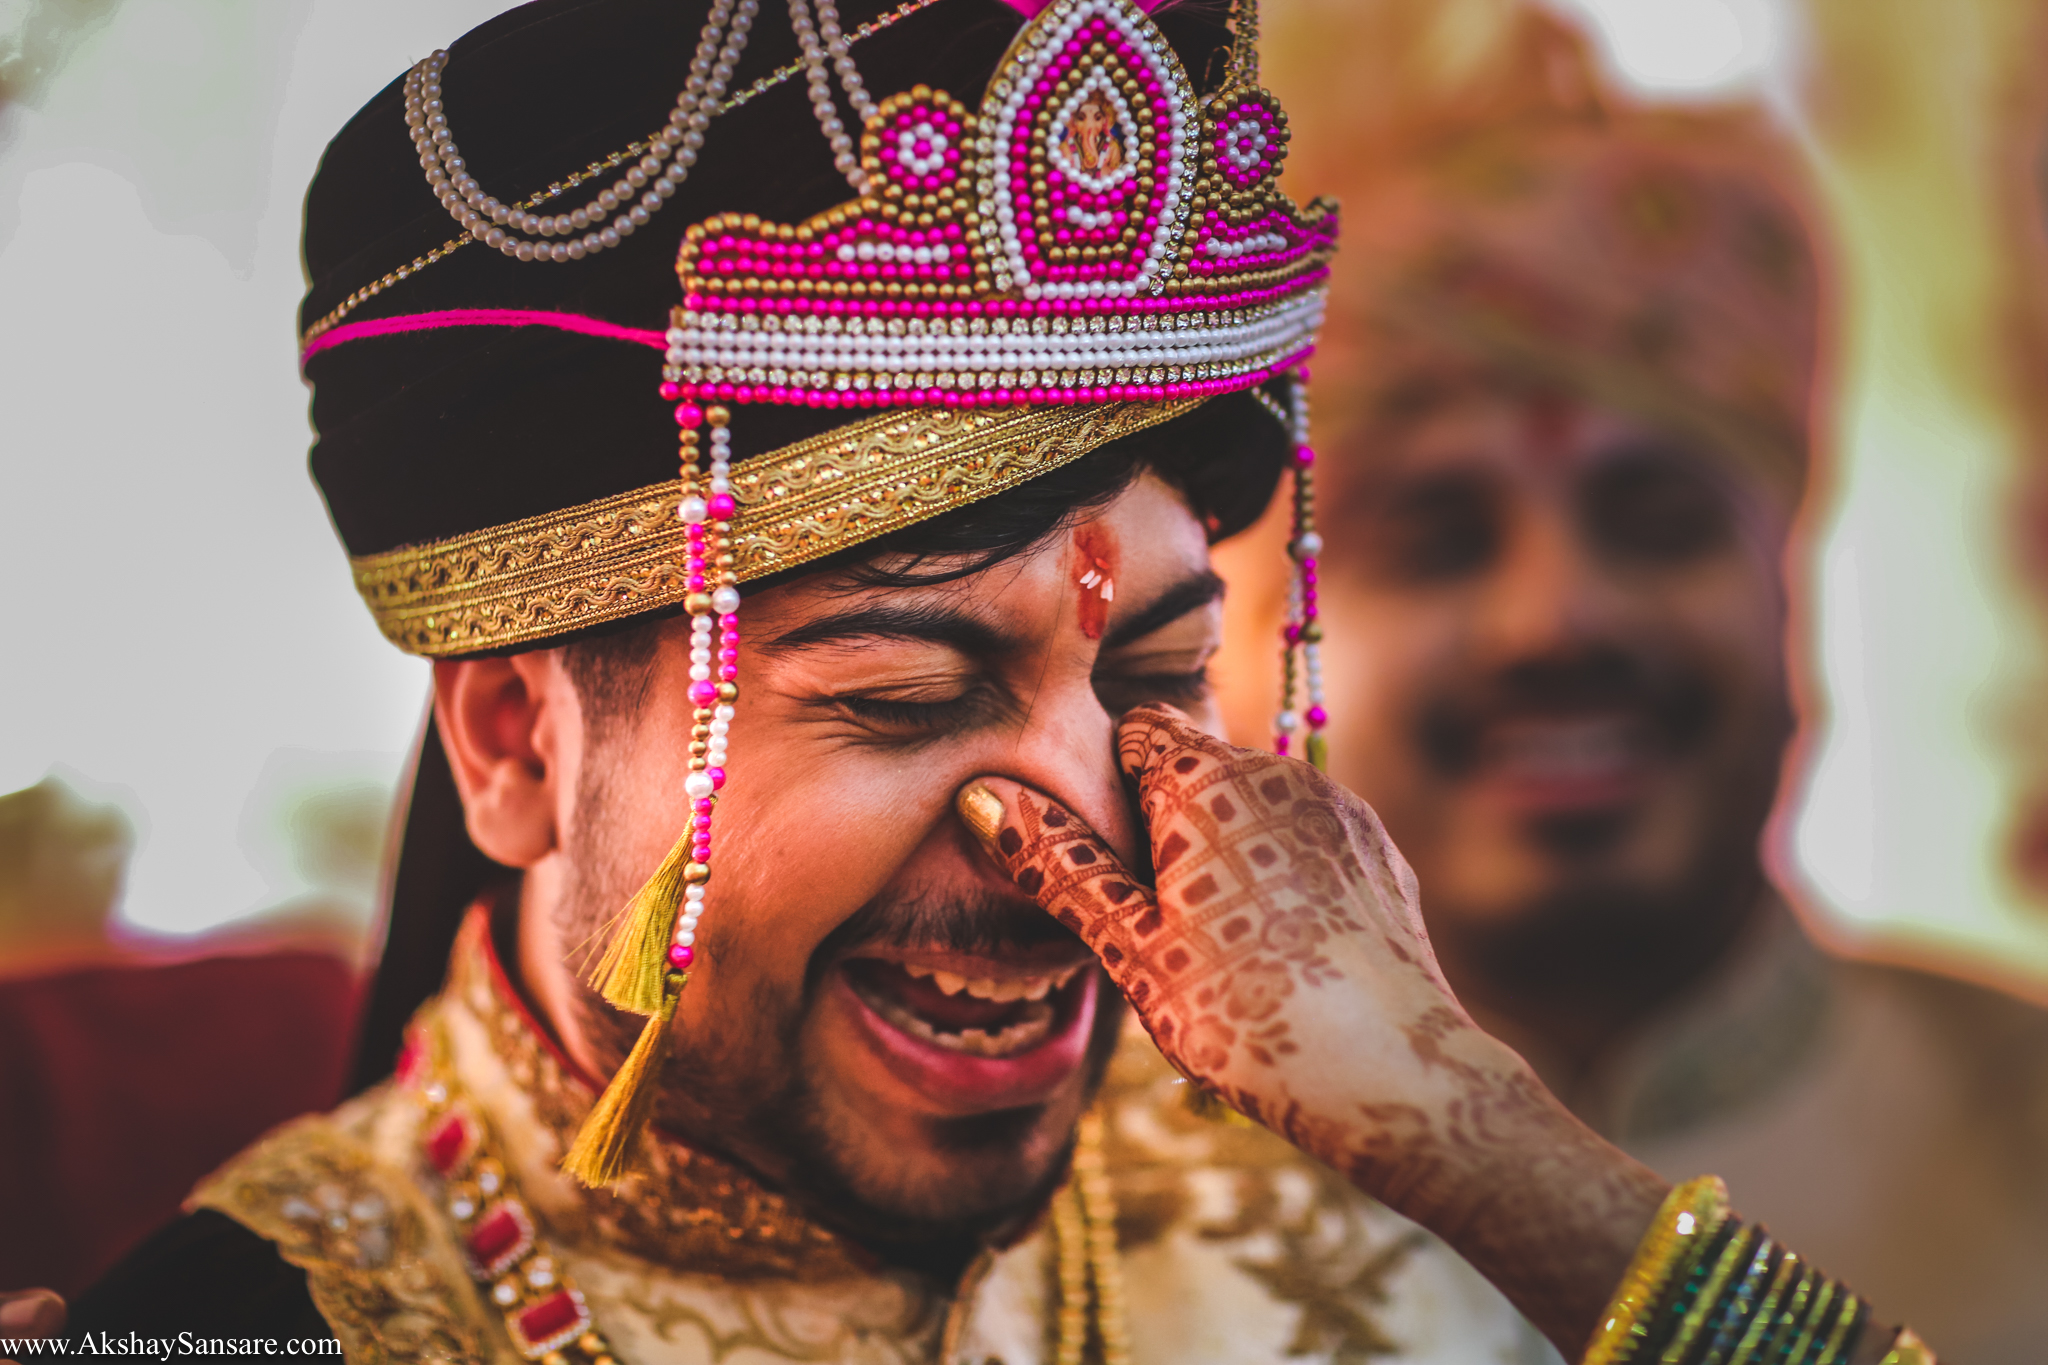 Nupur & Rohan wedding Akshay Sansare Photography best wedding photographer in mumbai India Candid(37).jpg